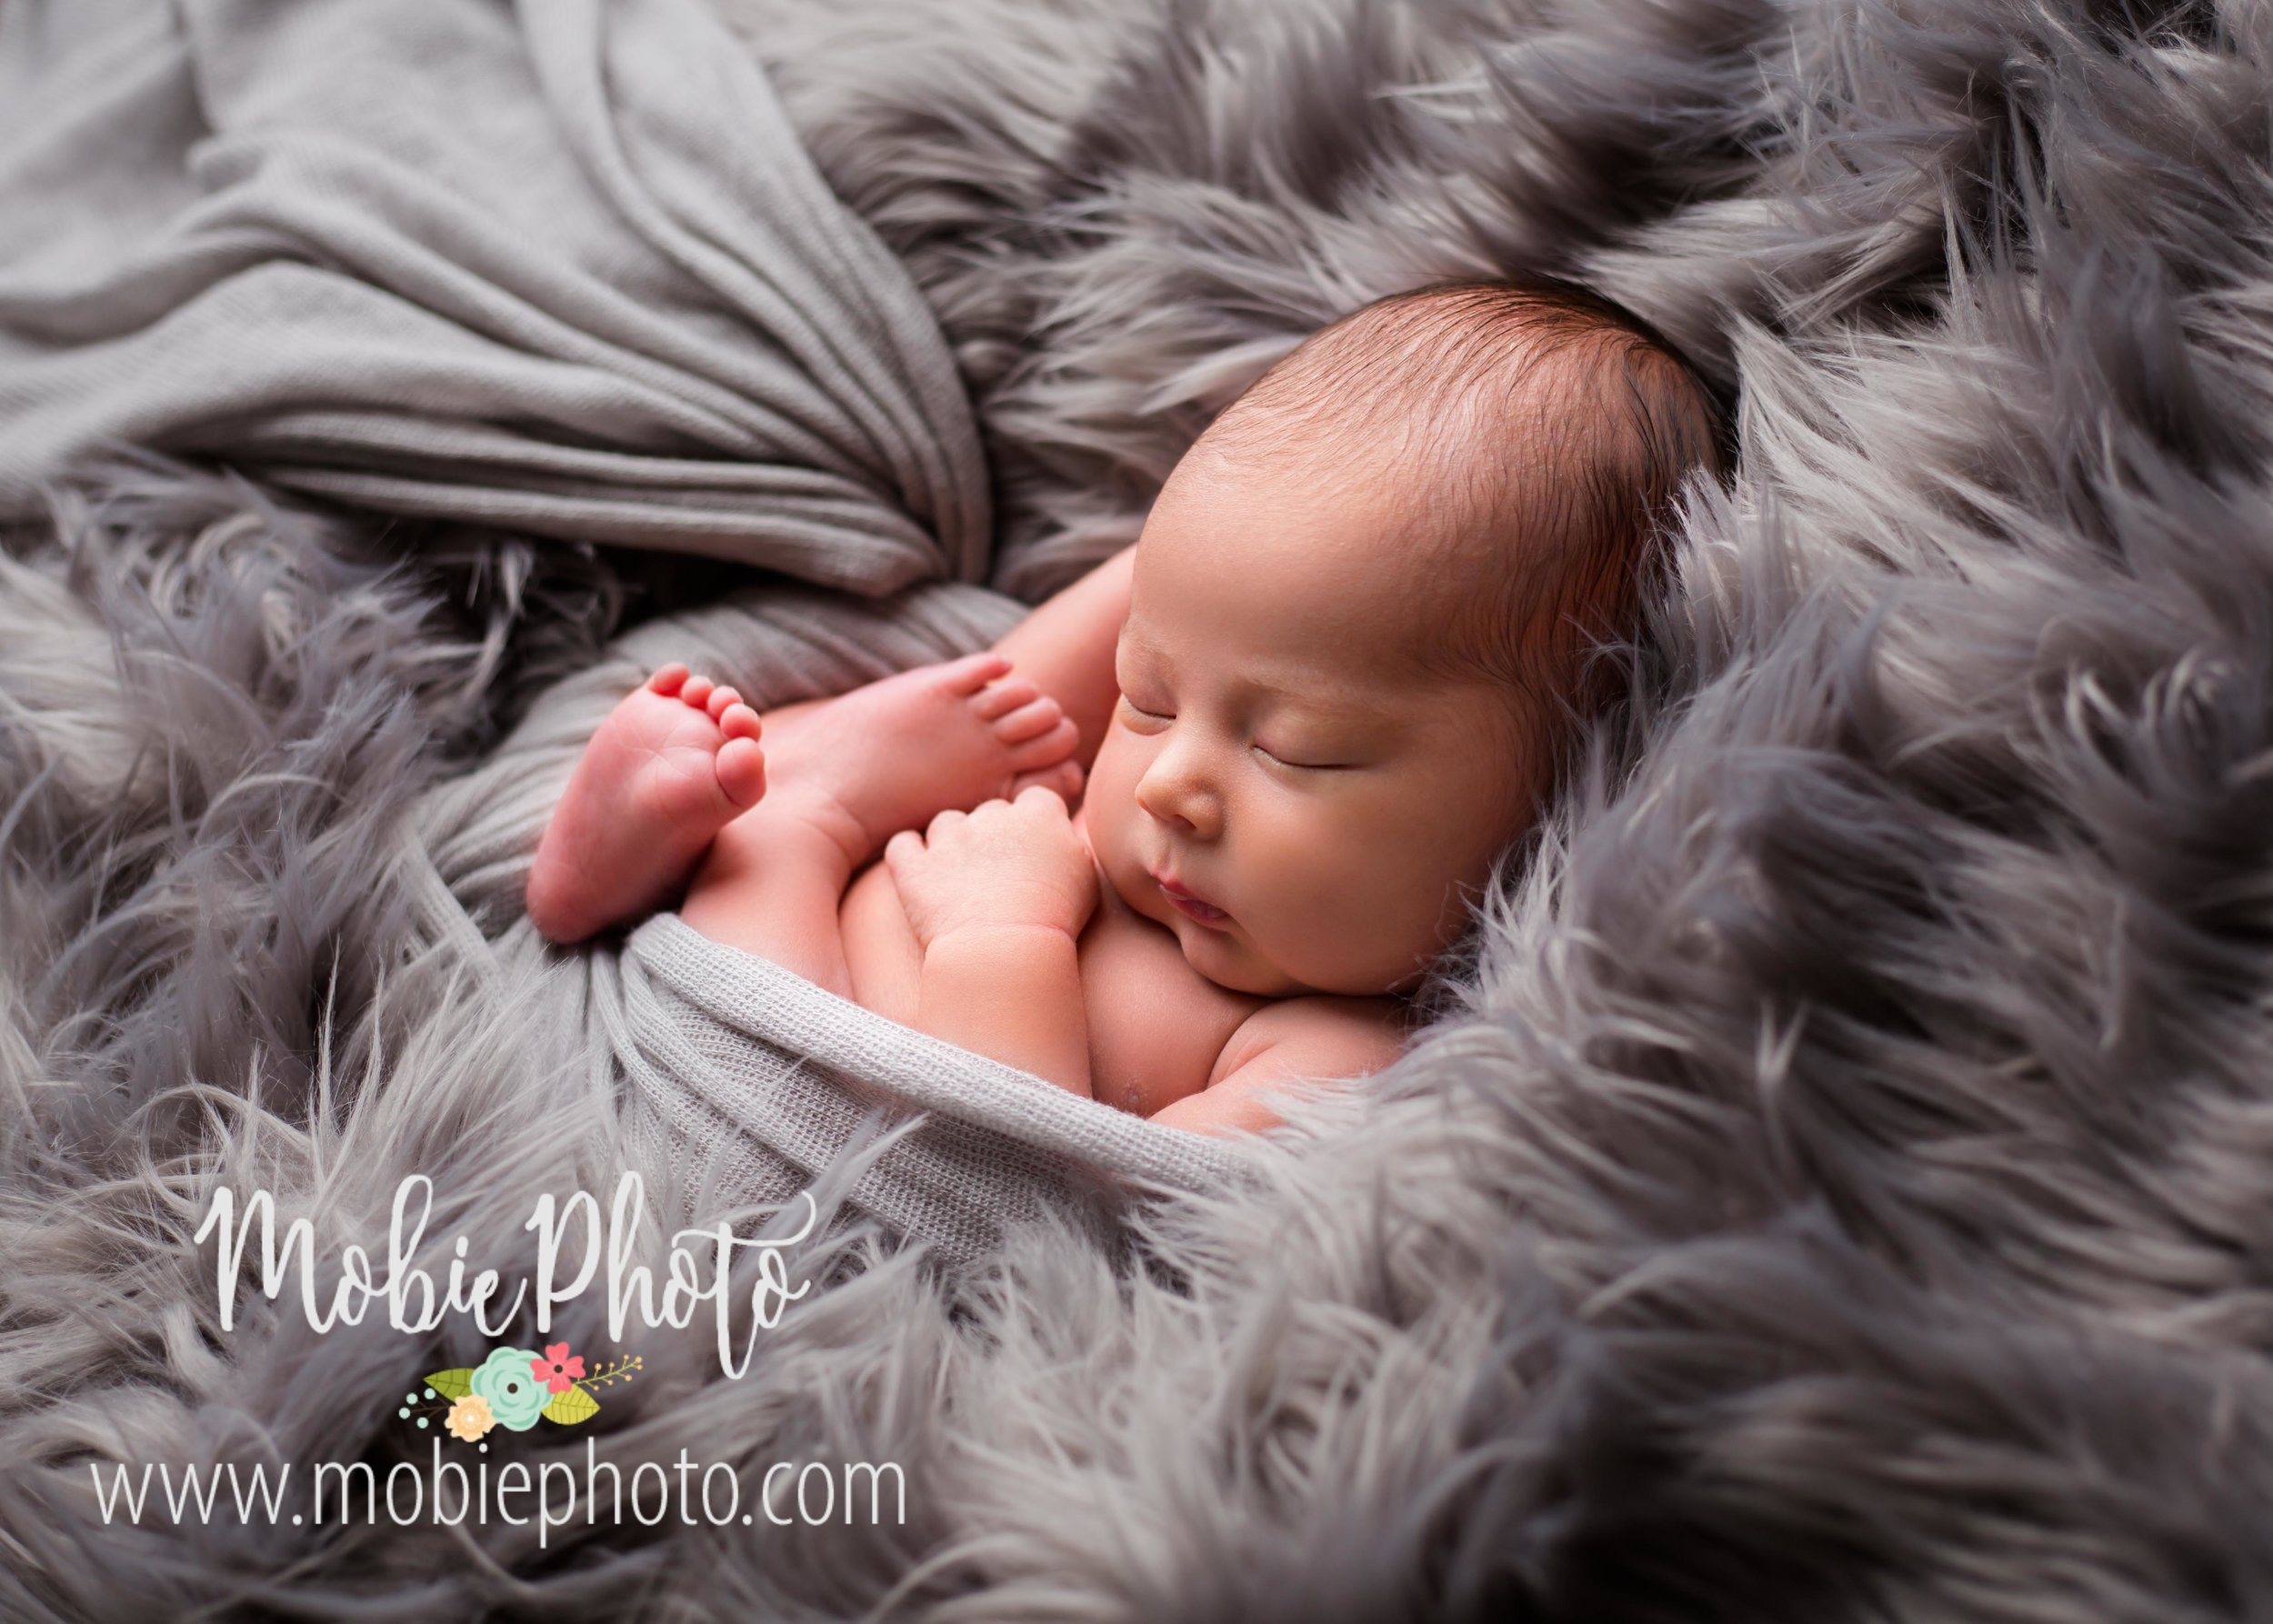 Mobie Photo - Utah Newborn Photographer